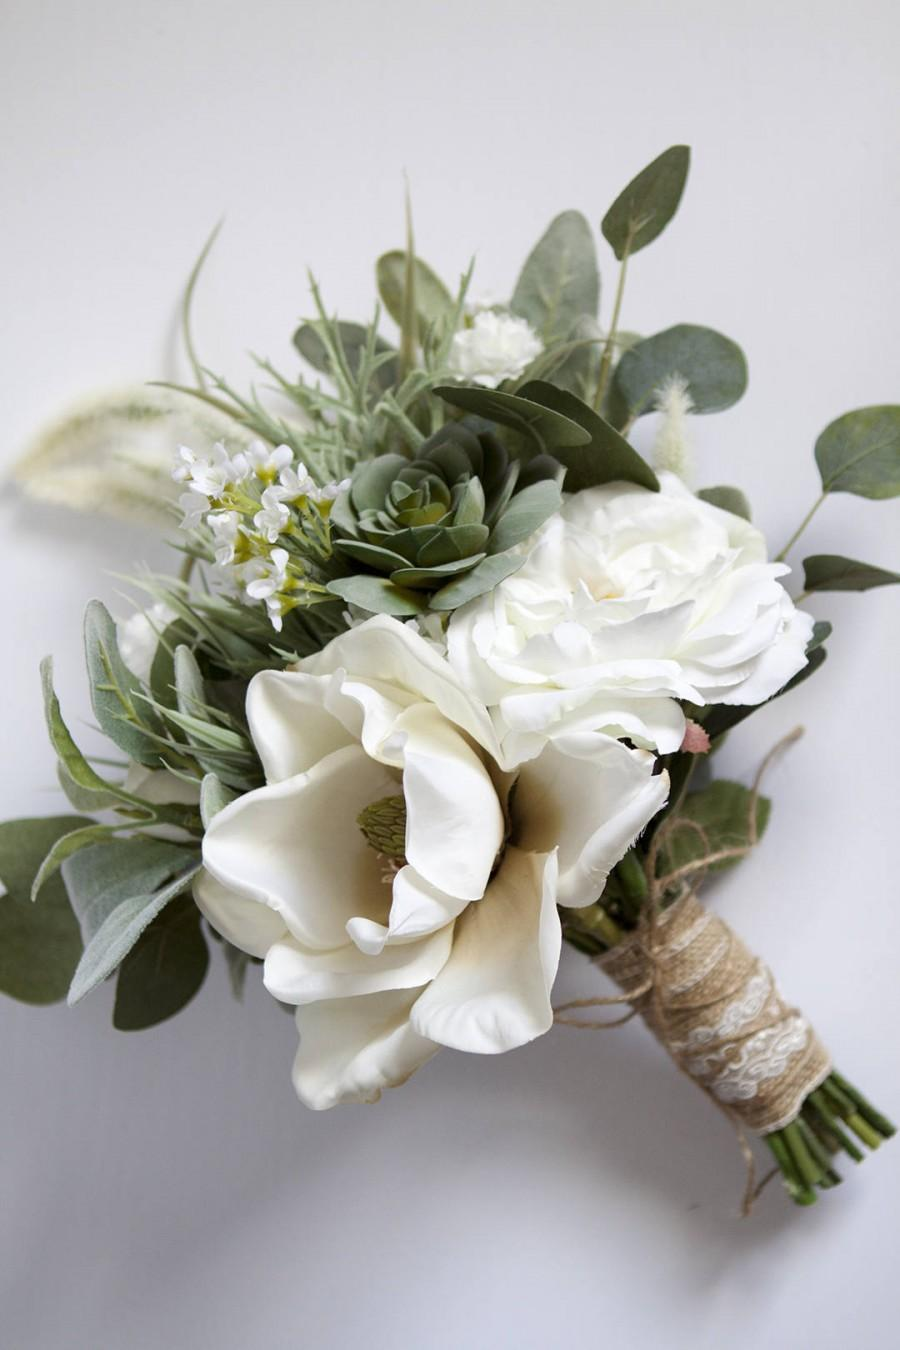 White wedding bouquet greenery succulent bridal bouquet silk white wedding bouquet greenery succulent bridal bouquet silk flower bridal bouquet greenery bouquet wedding flowers wildflower bouquet izmirmasajfo